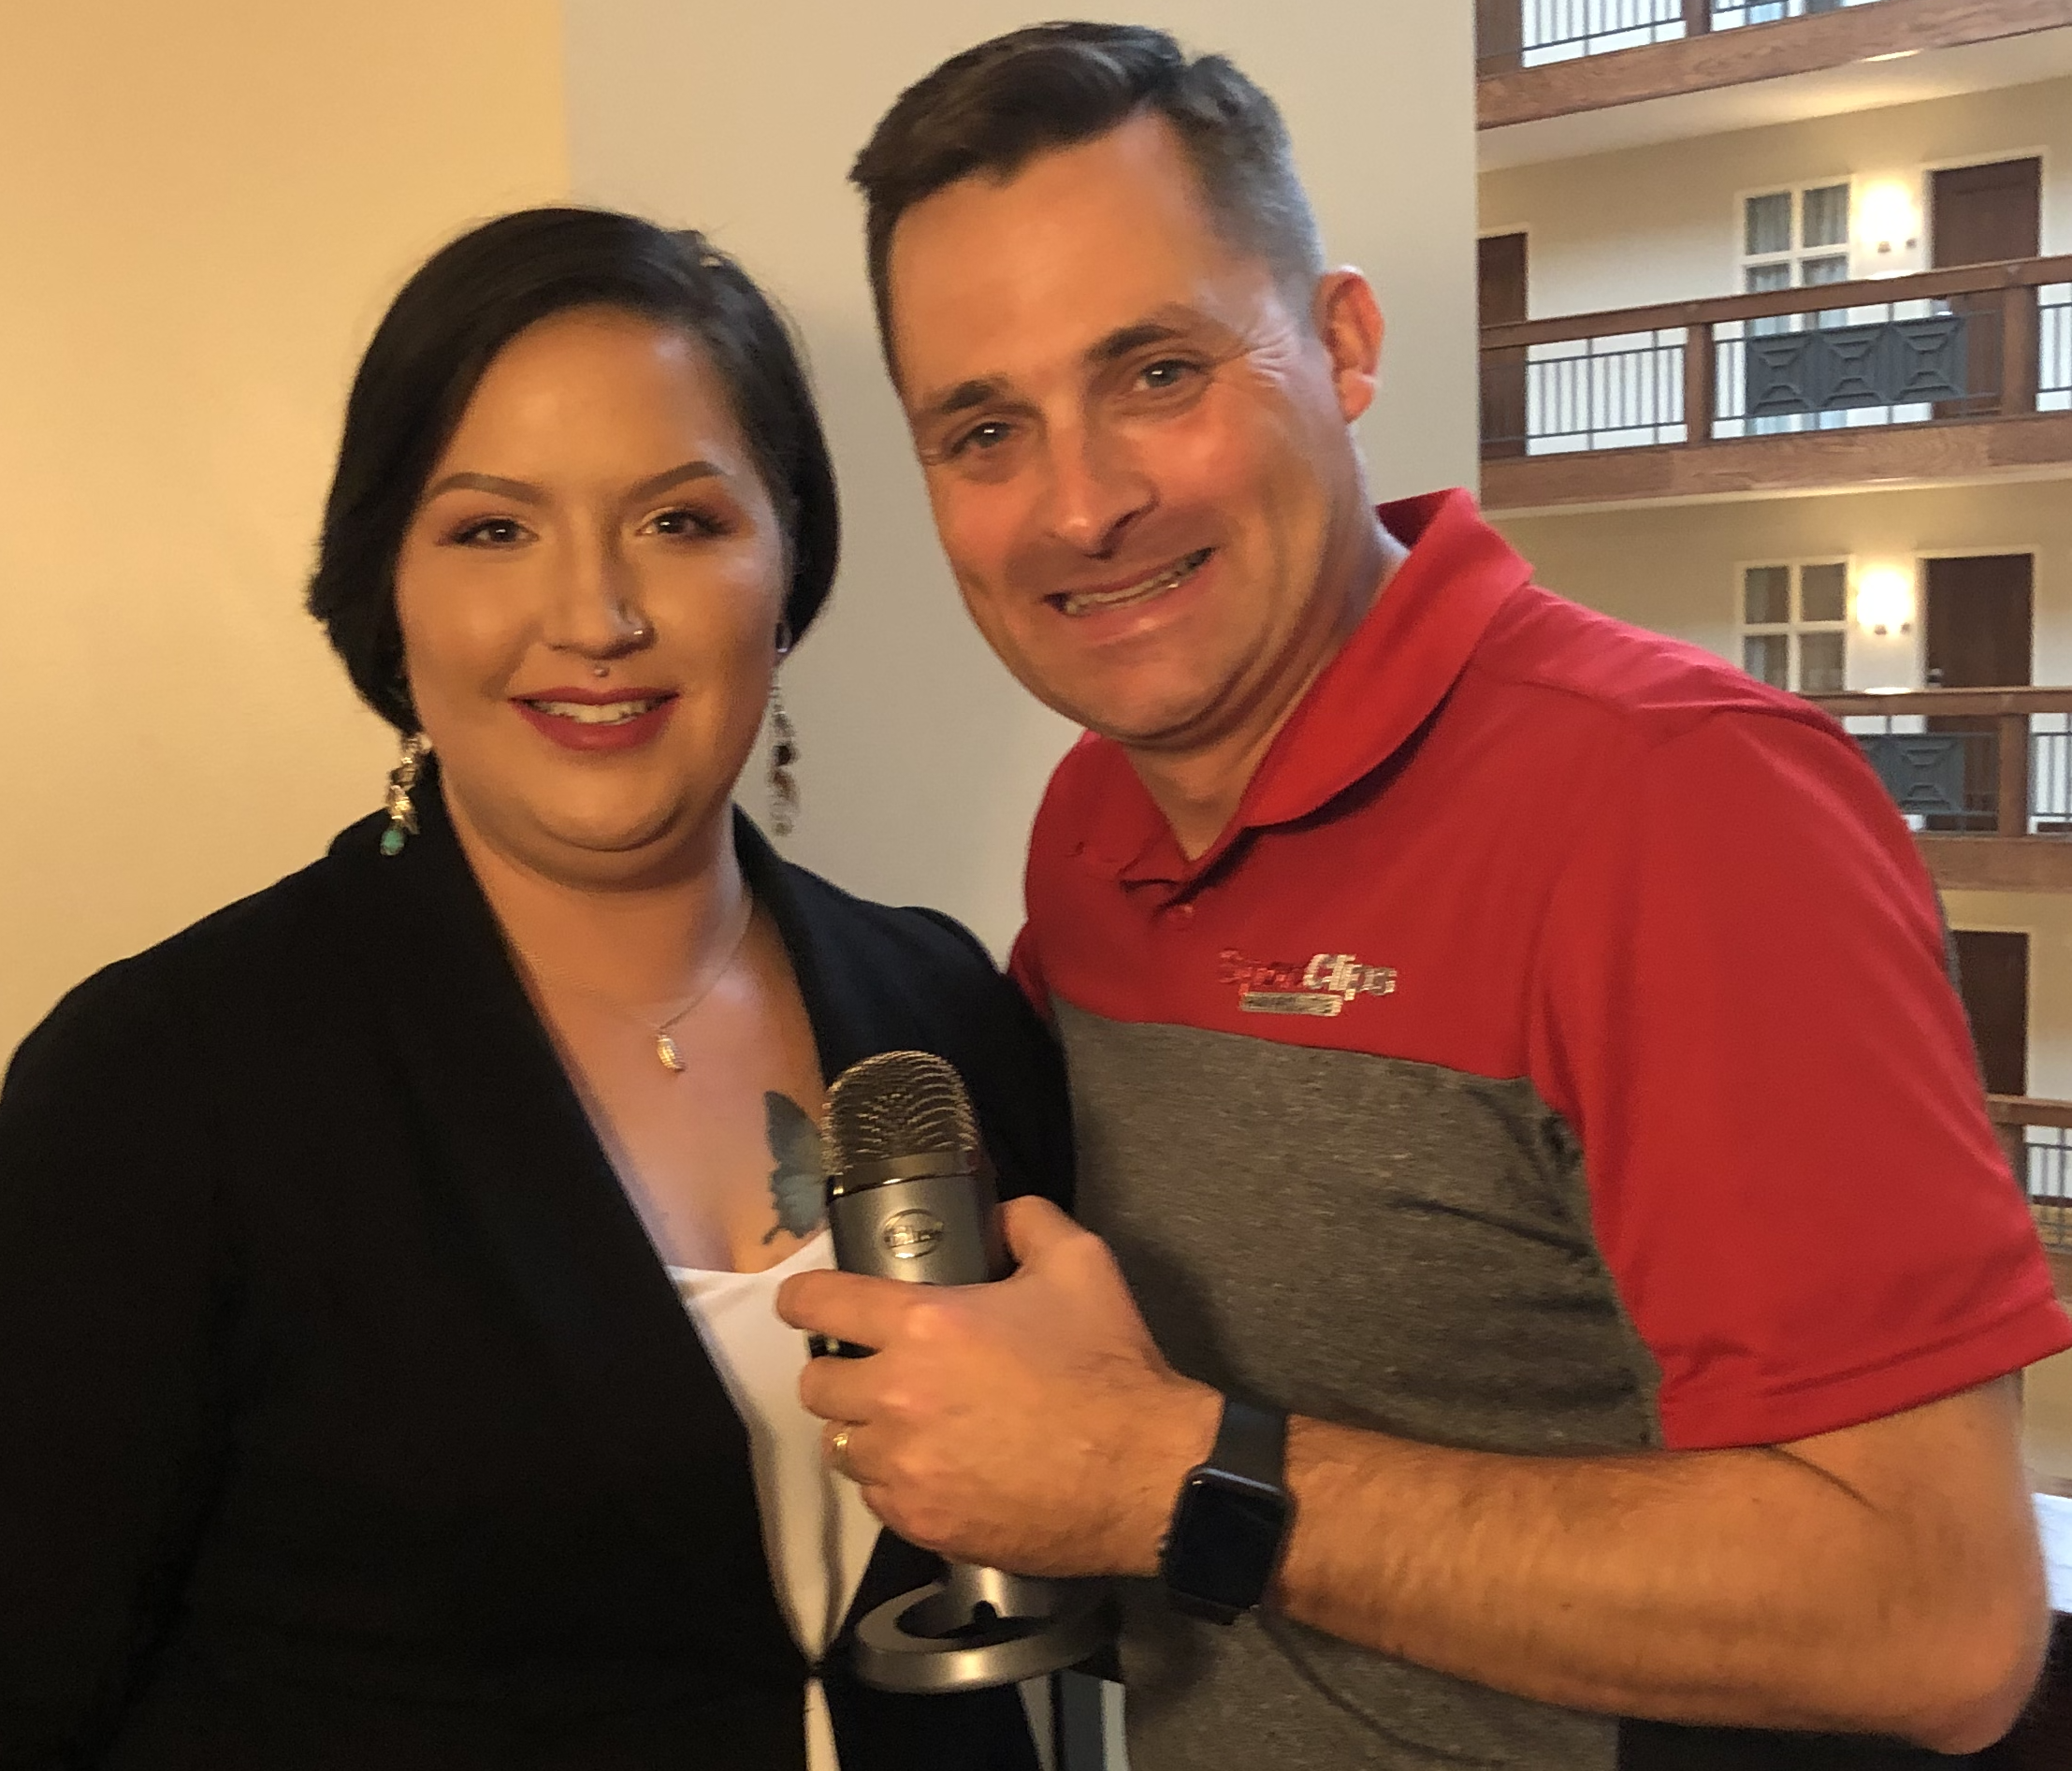 Chad Jordan and Colleen Foster holding a microphone